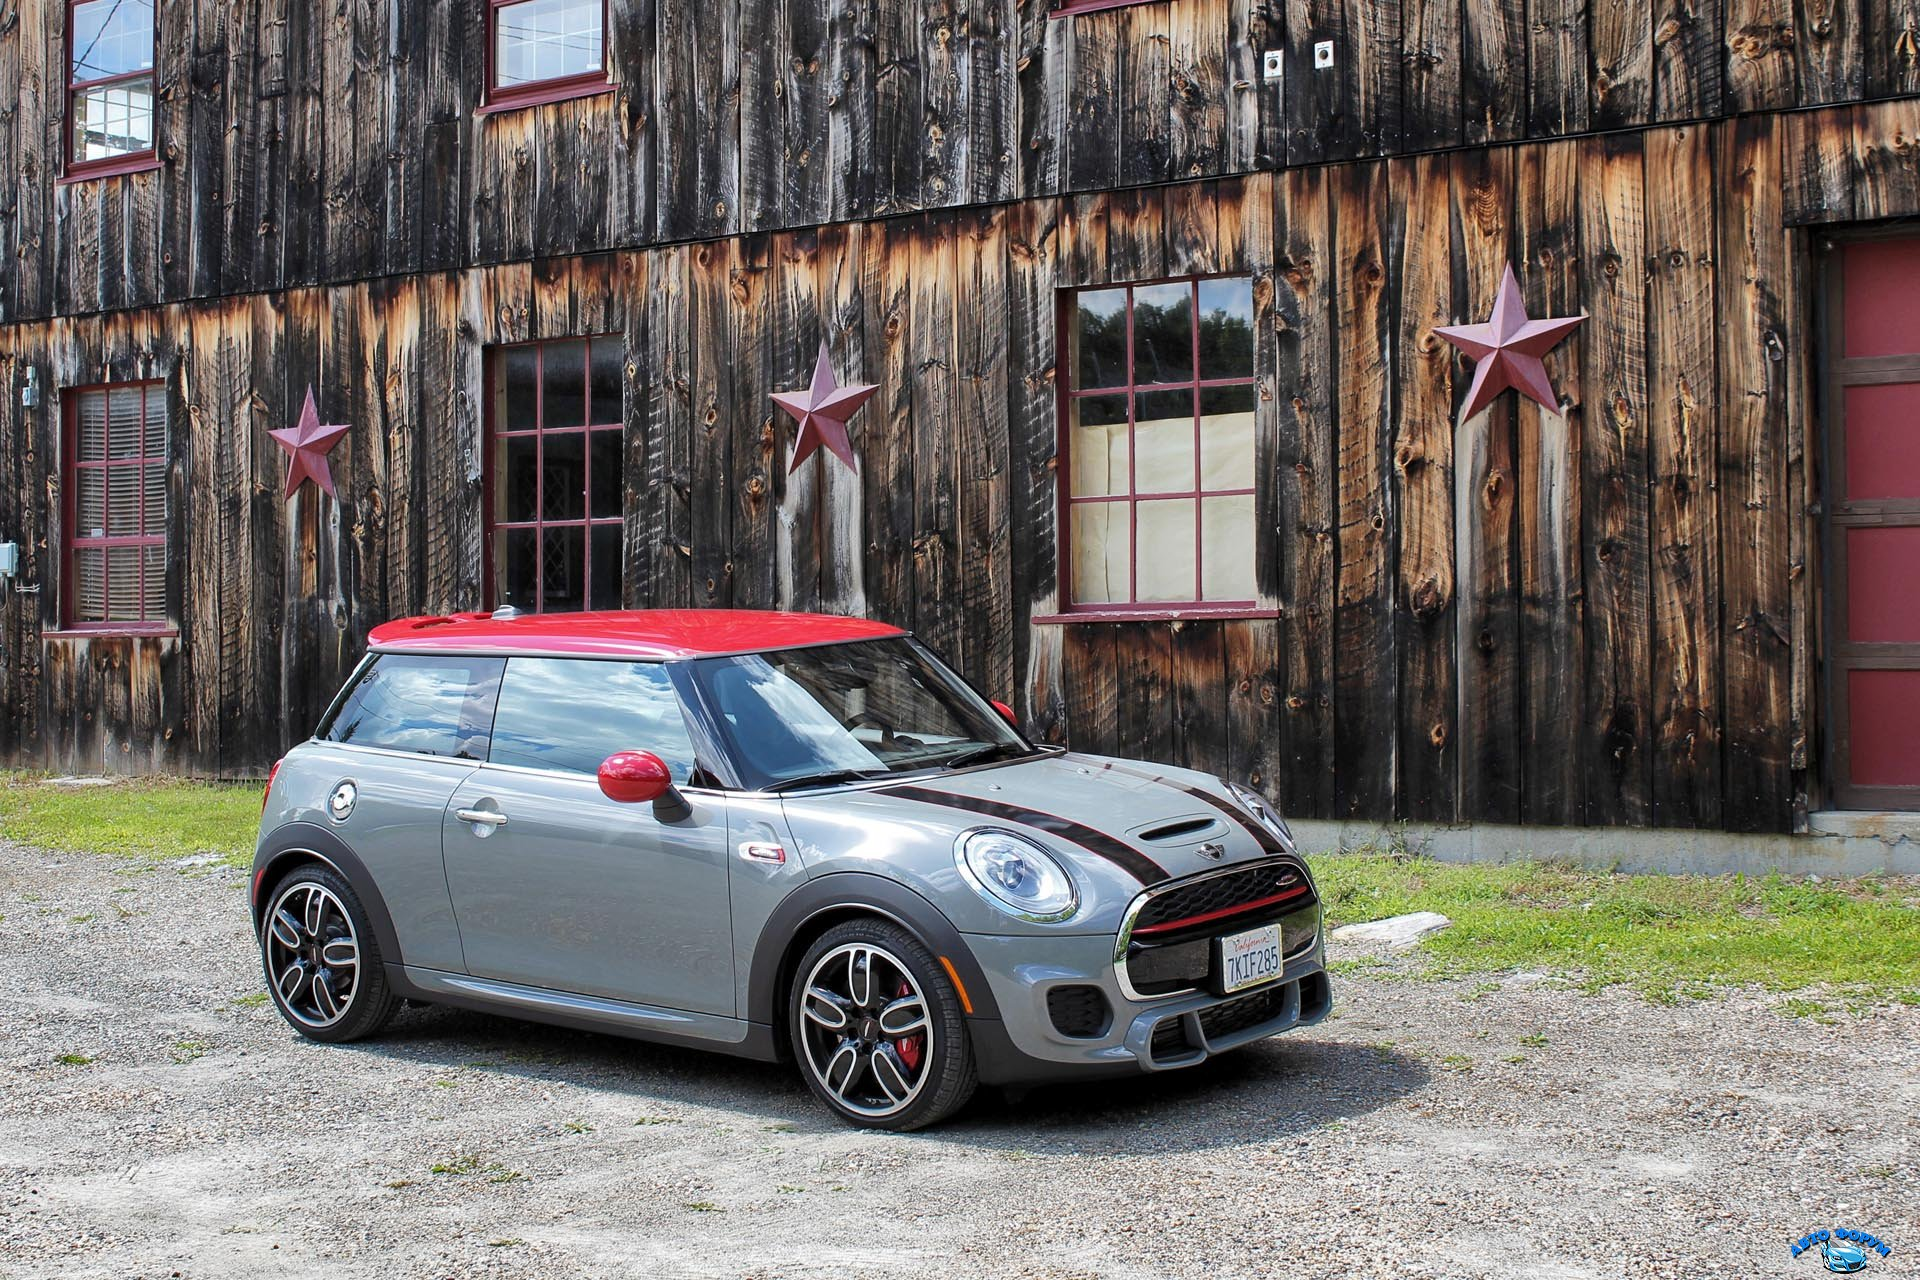 2016-Mini-John-Cooper-Works-3-Door-PB-01.jpg